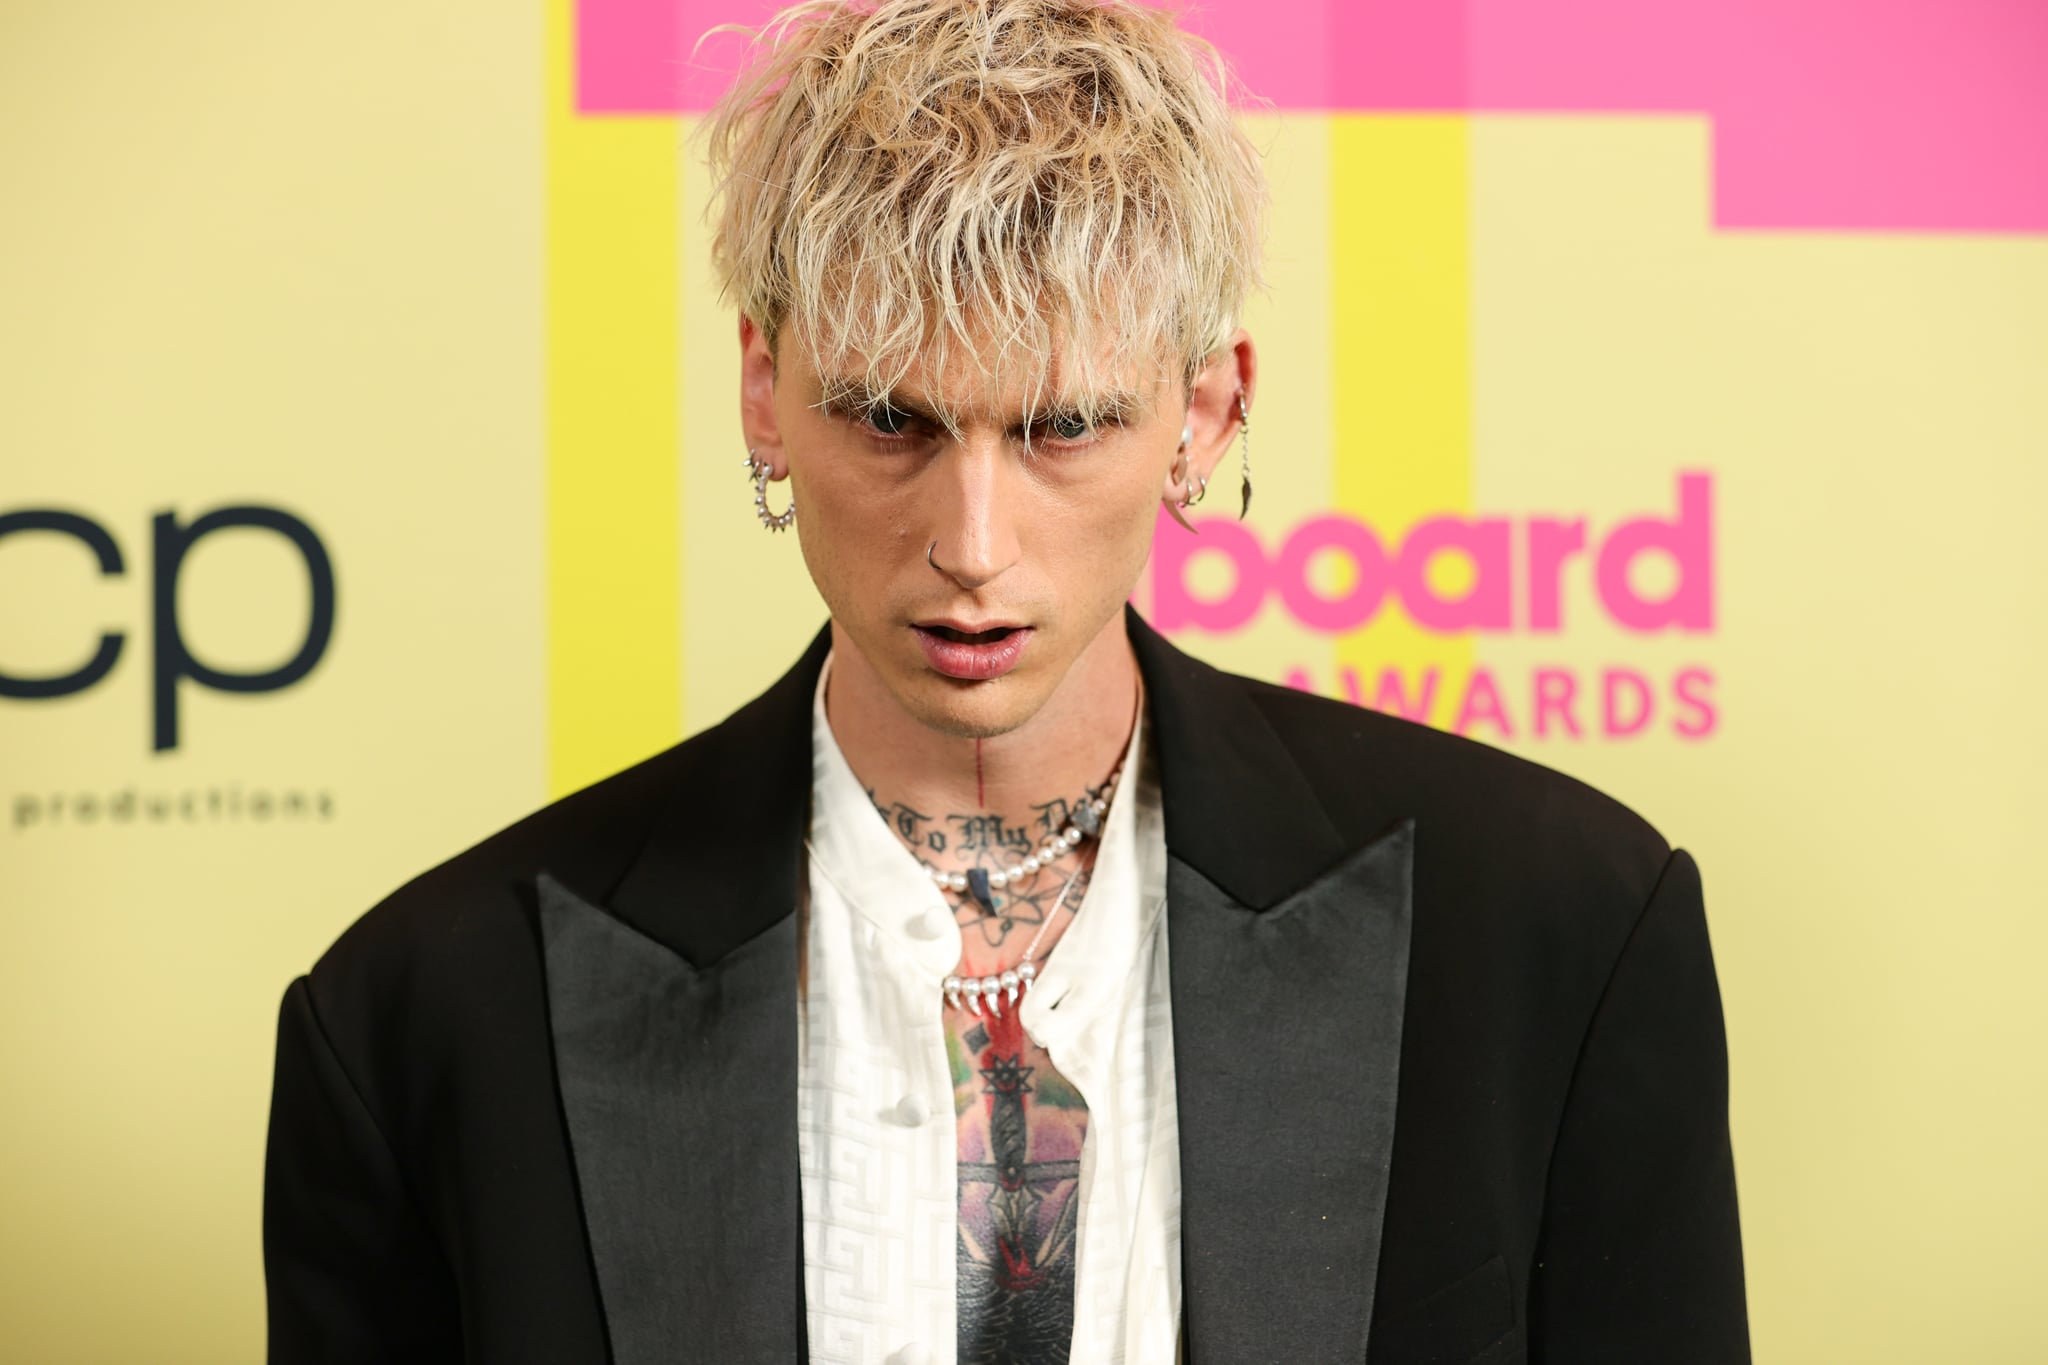 LOS ANGELES, CALIFORNIA - MAY 23: Machine Gun Kelly poses backstage for the 2021 Billboard Music Awards, broadcast on May 23, 2021 at Microsoft Theatre in Los Angeles, California. (Photo by Rich Fury/Getty Images for dcp)